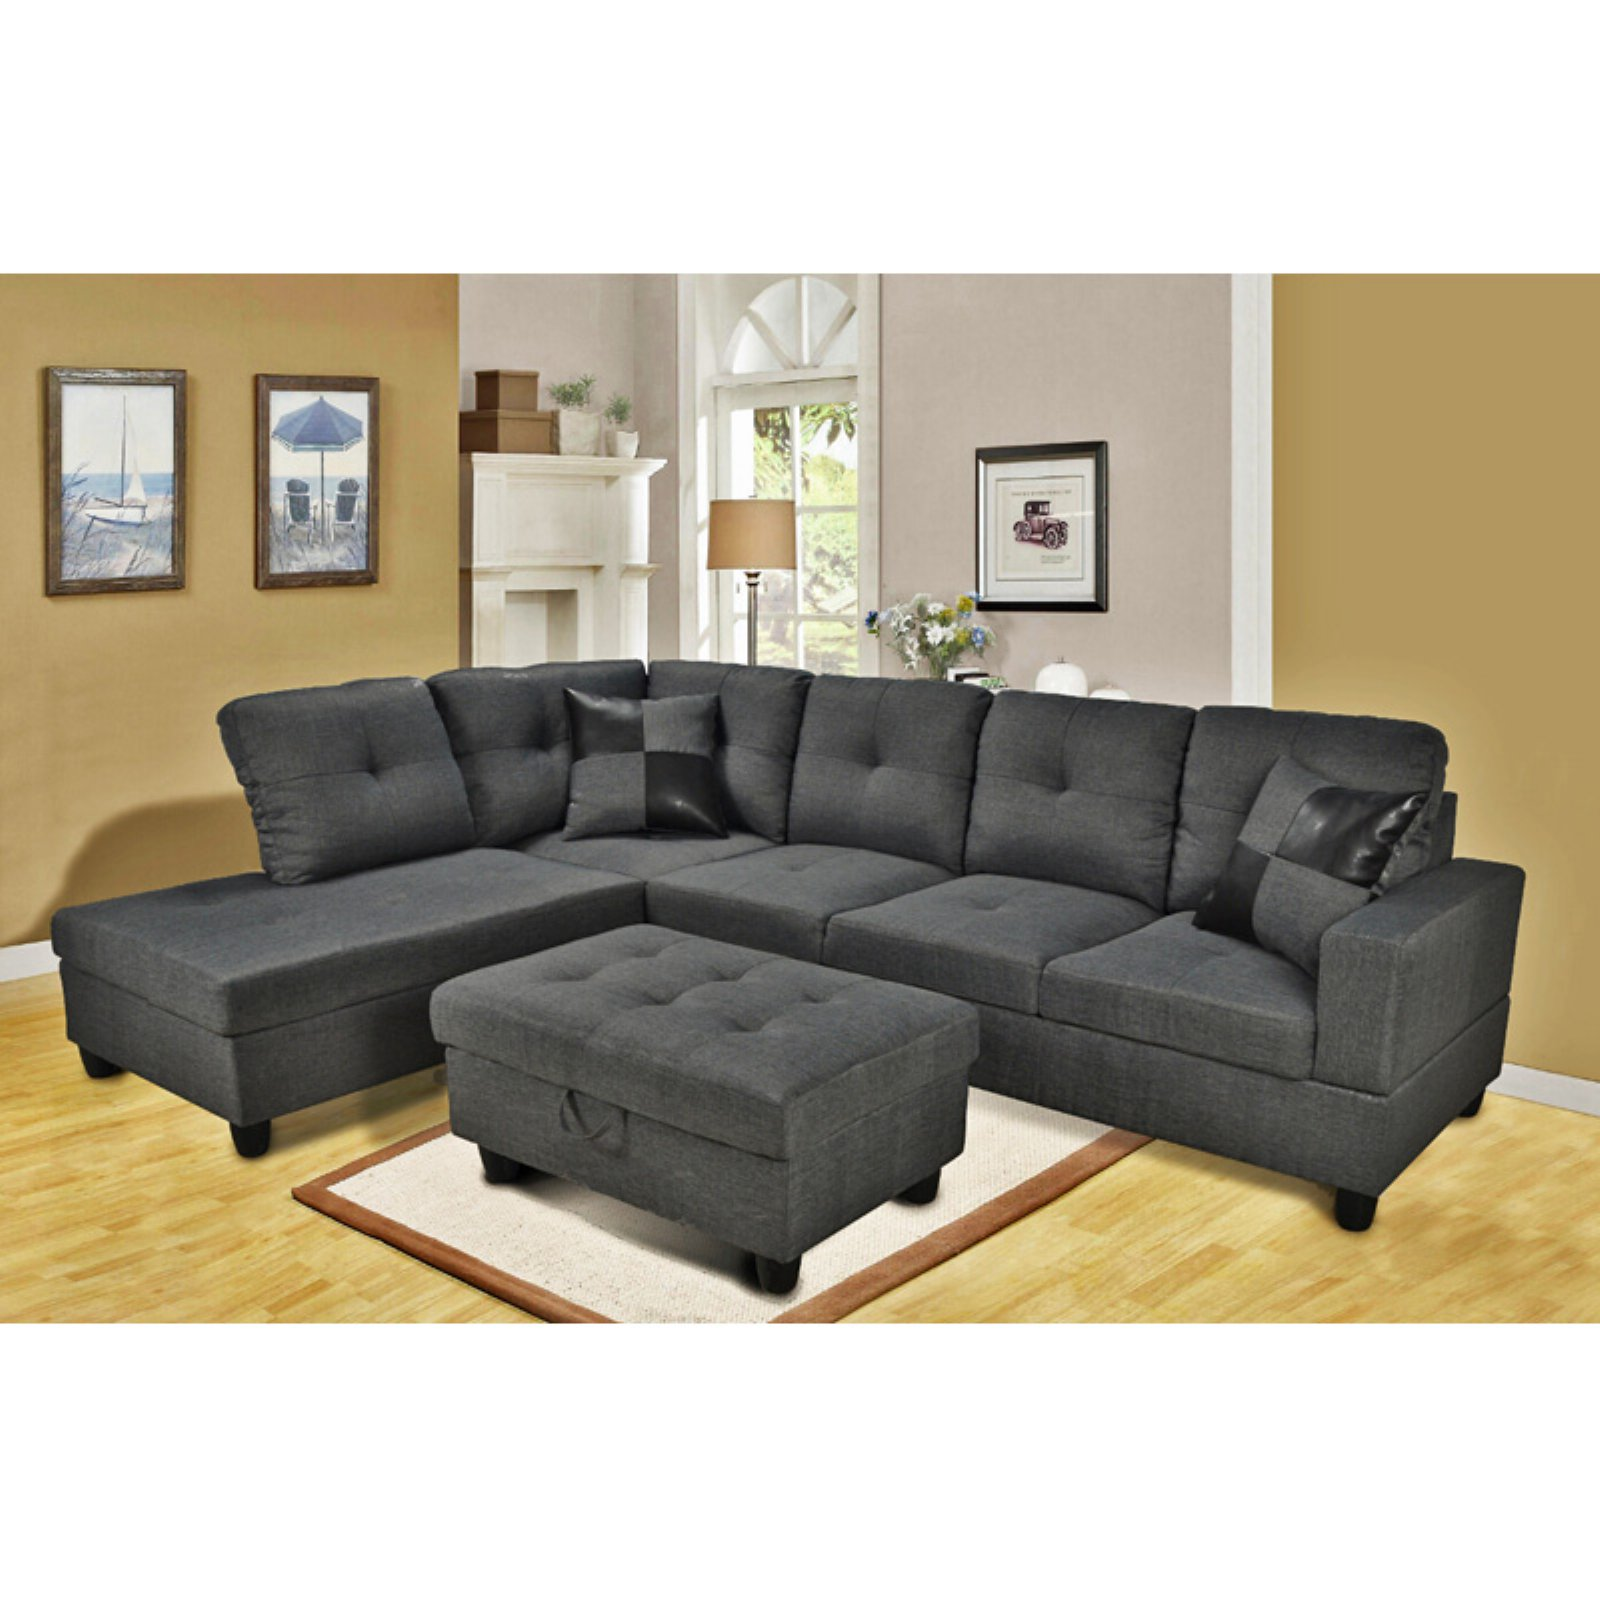 Beverly Fine Furniture 3-Piece Gray Microfiber Sectional Sofa